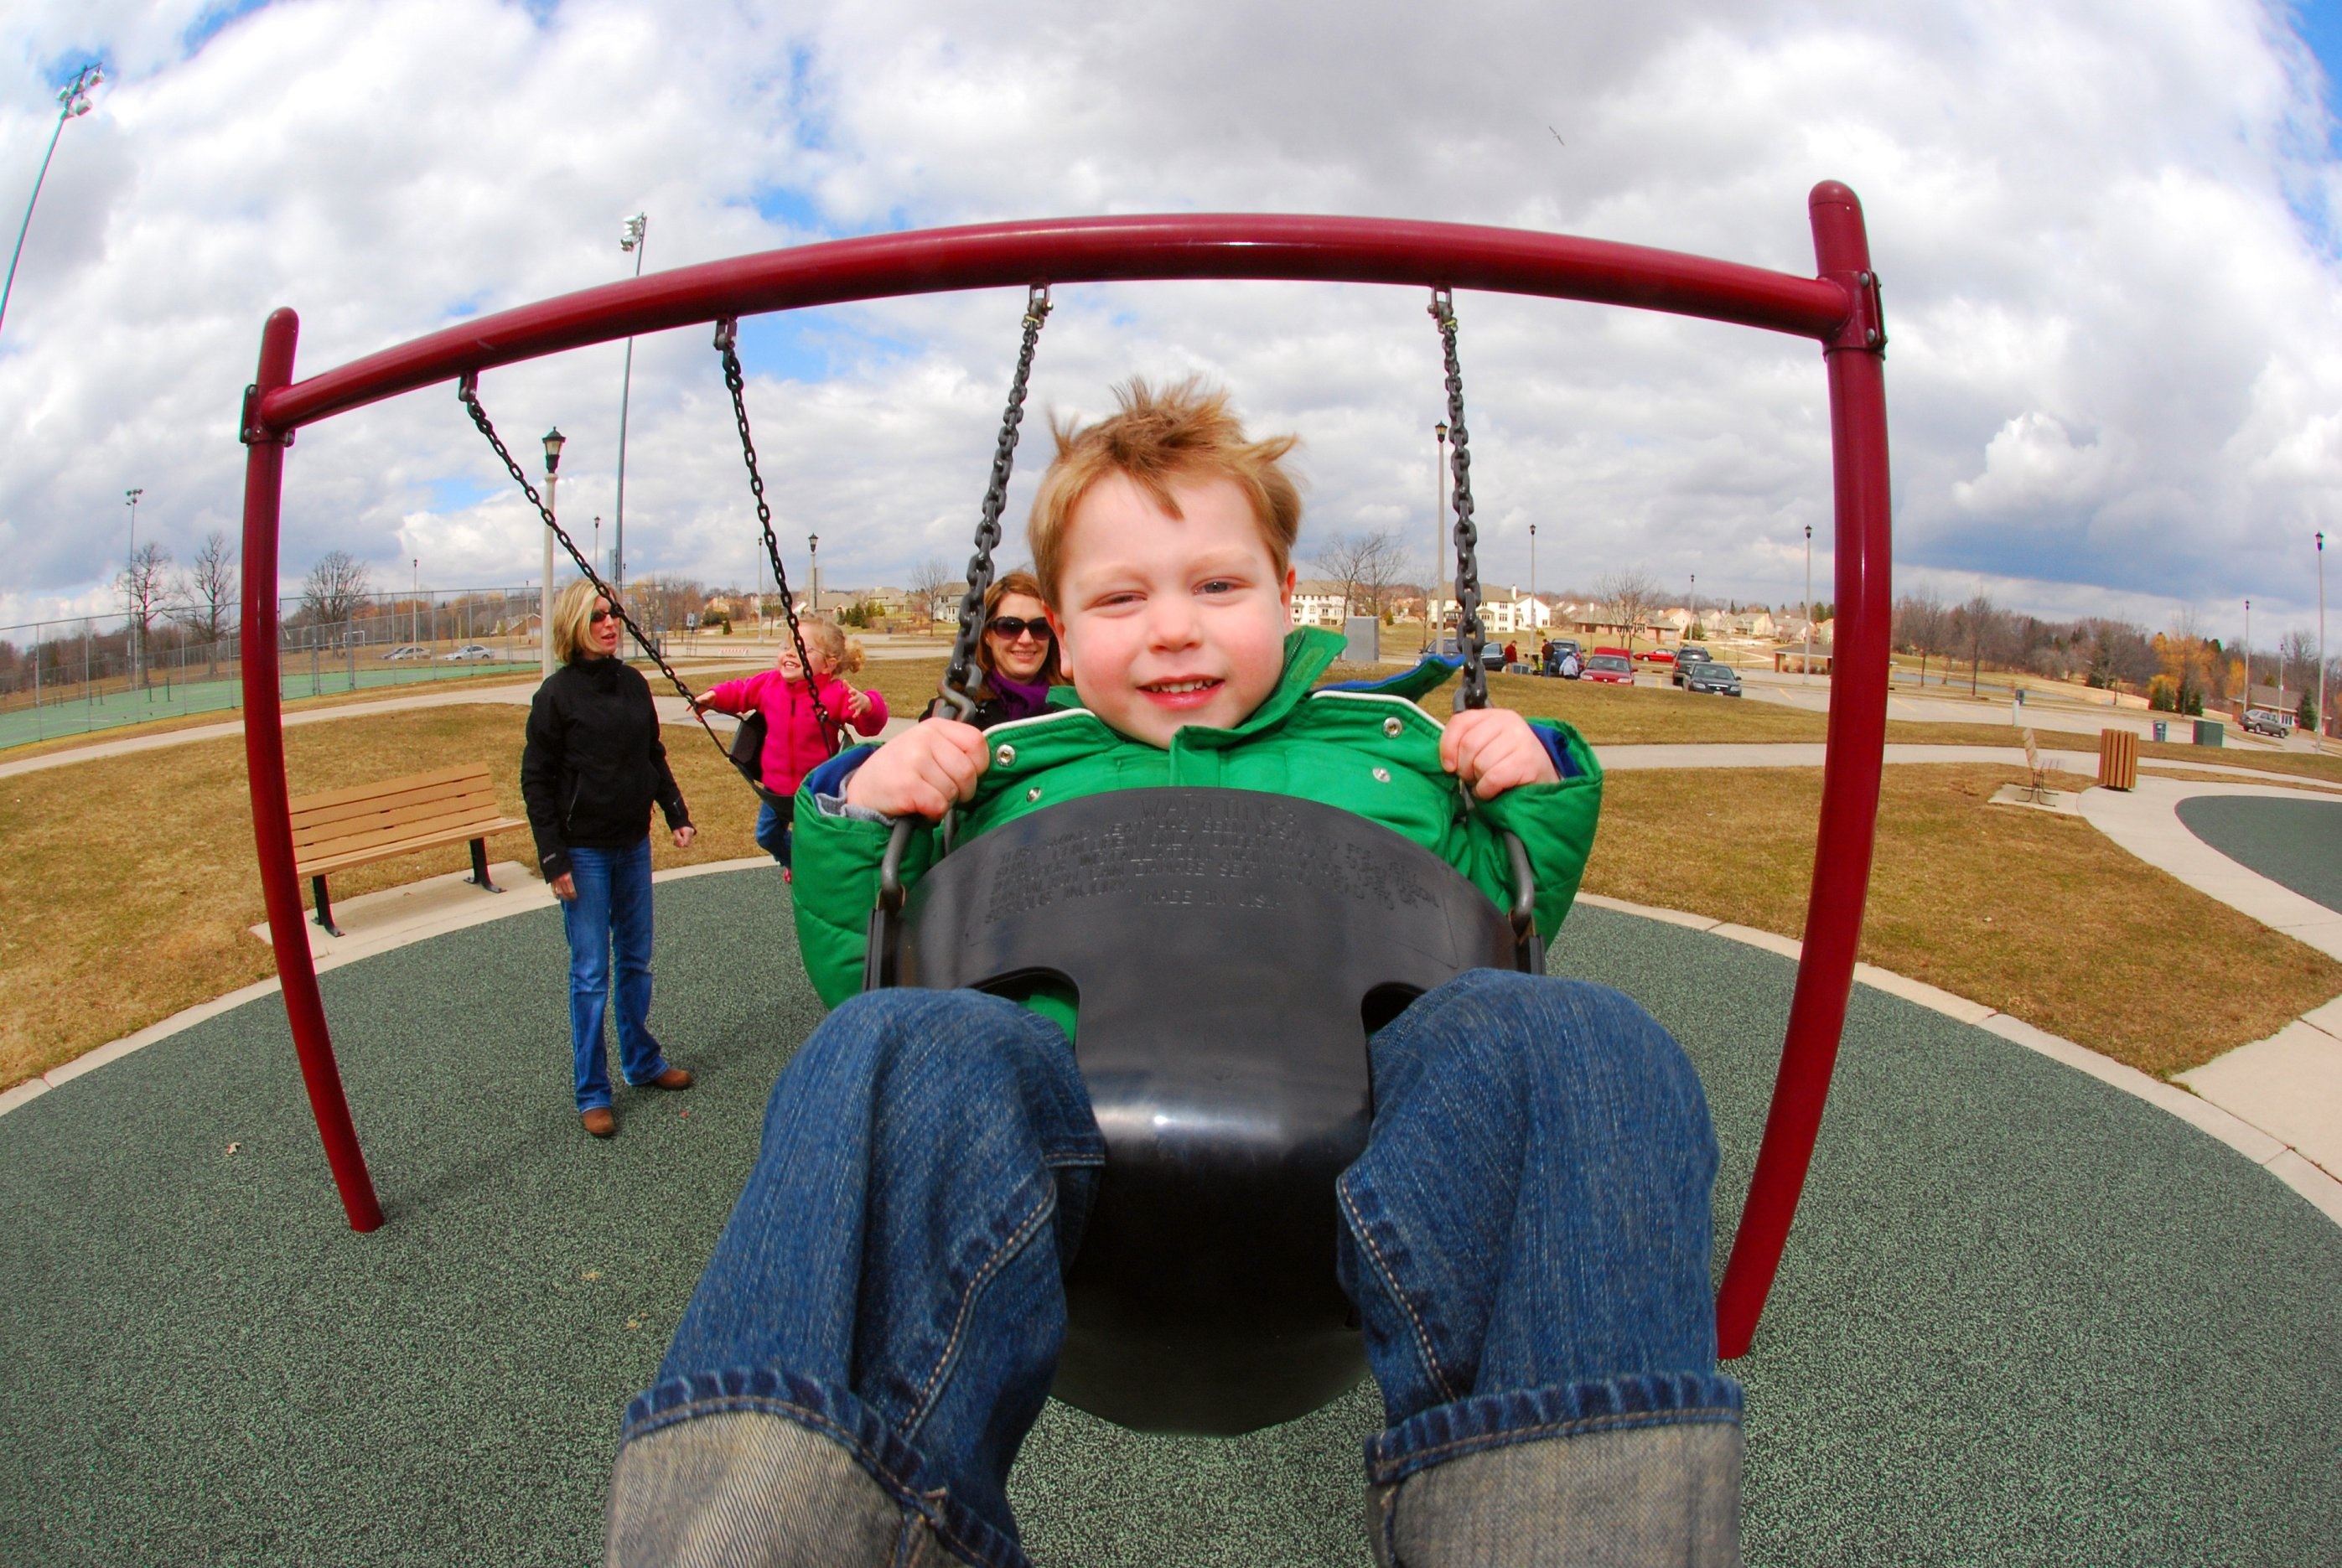 A close-up of a young, smiling child swinging on a playground swing